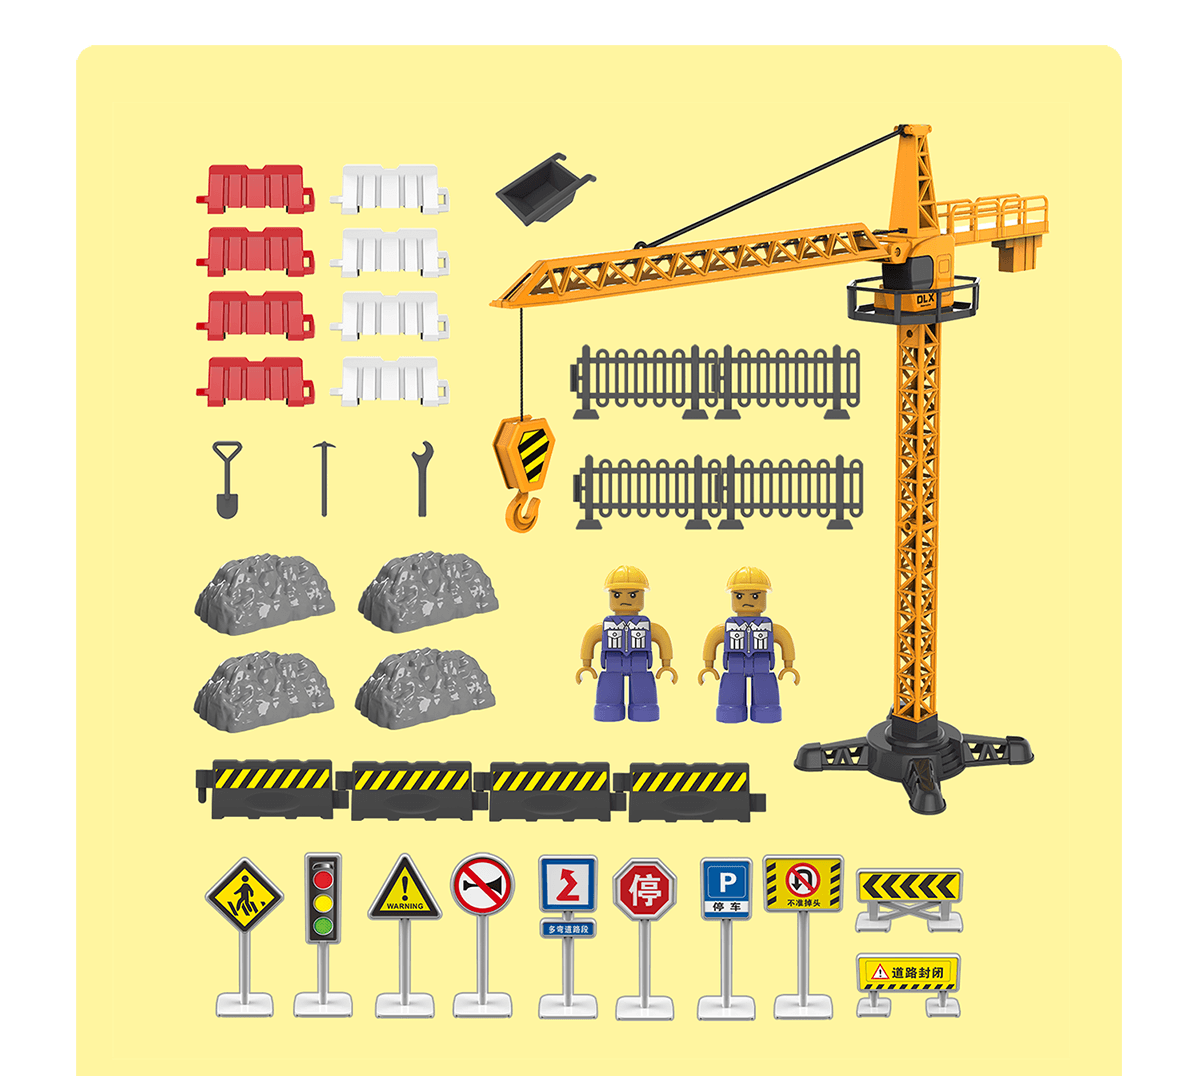 hight resolution of construction tower crane site road signs traffic light accessories diecast toy city building play set engineering toys for boys